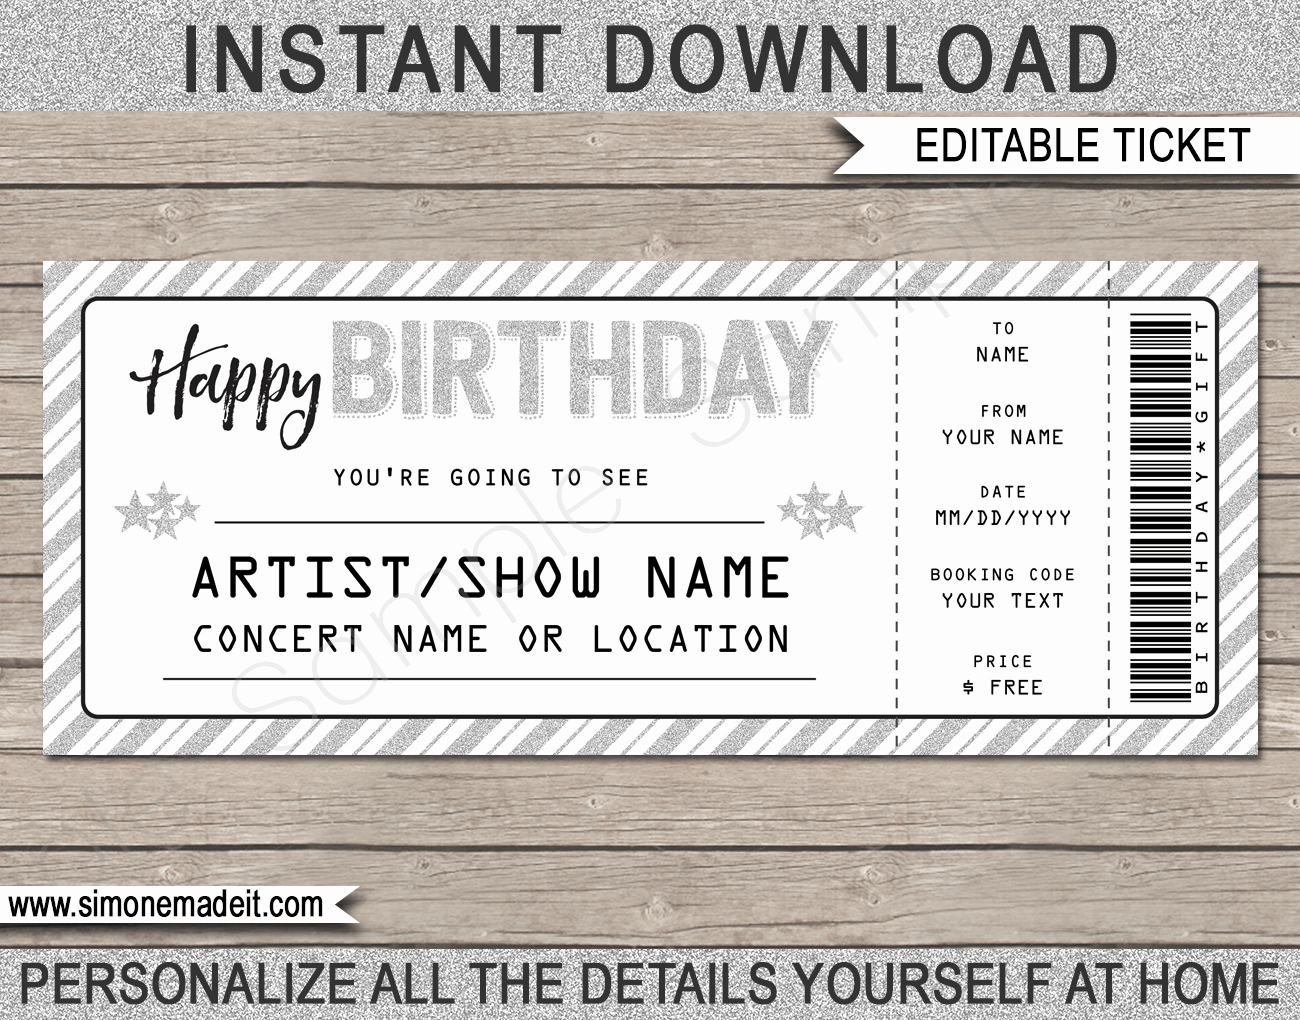 Print Tickets Free Template Beautiful Printable Concert Ticket Template